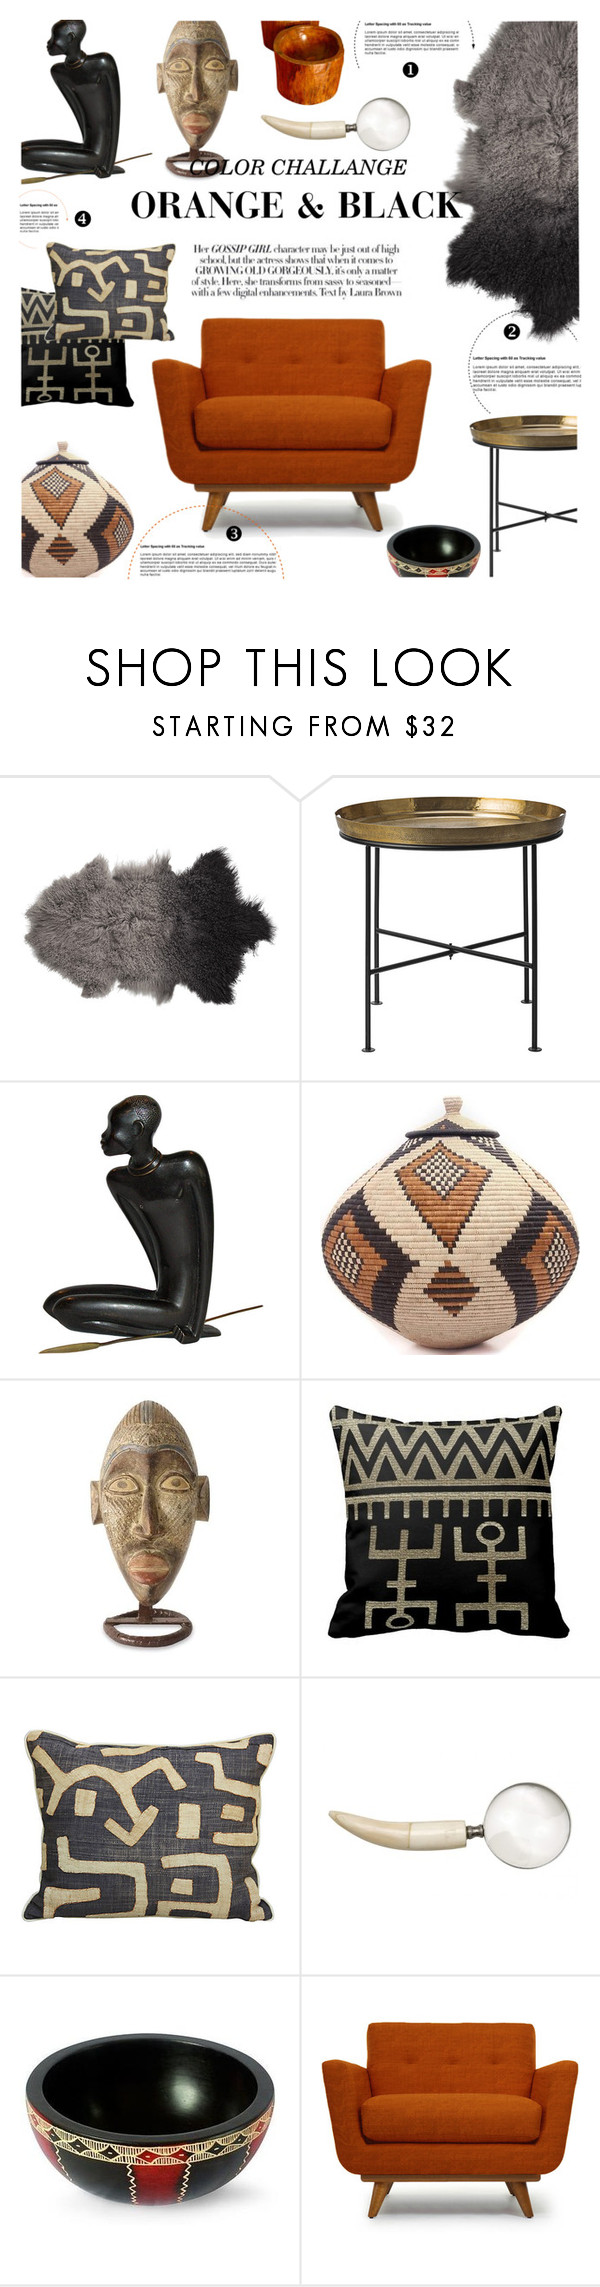 """Untitled #357"" by zitanagy ❤ liked on Polyvore featuring interior, interiors, interior design, дом, home decor, interior decorating, Bloomingville, DAY Birger et Mikkelsen, NOVICA и Jayson Home"